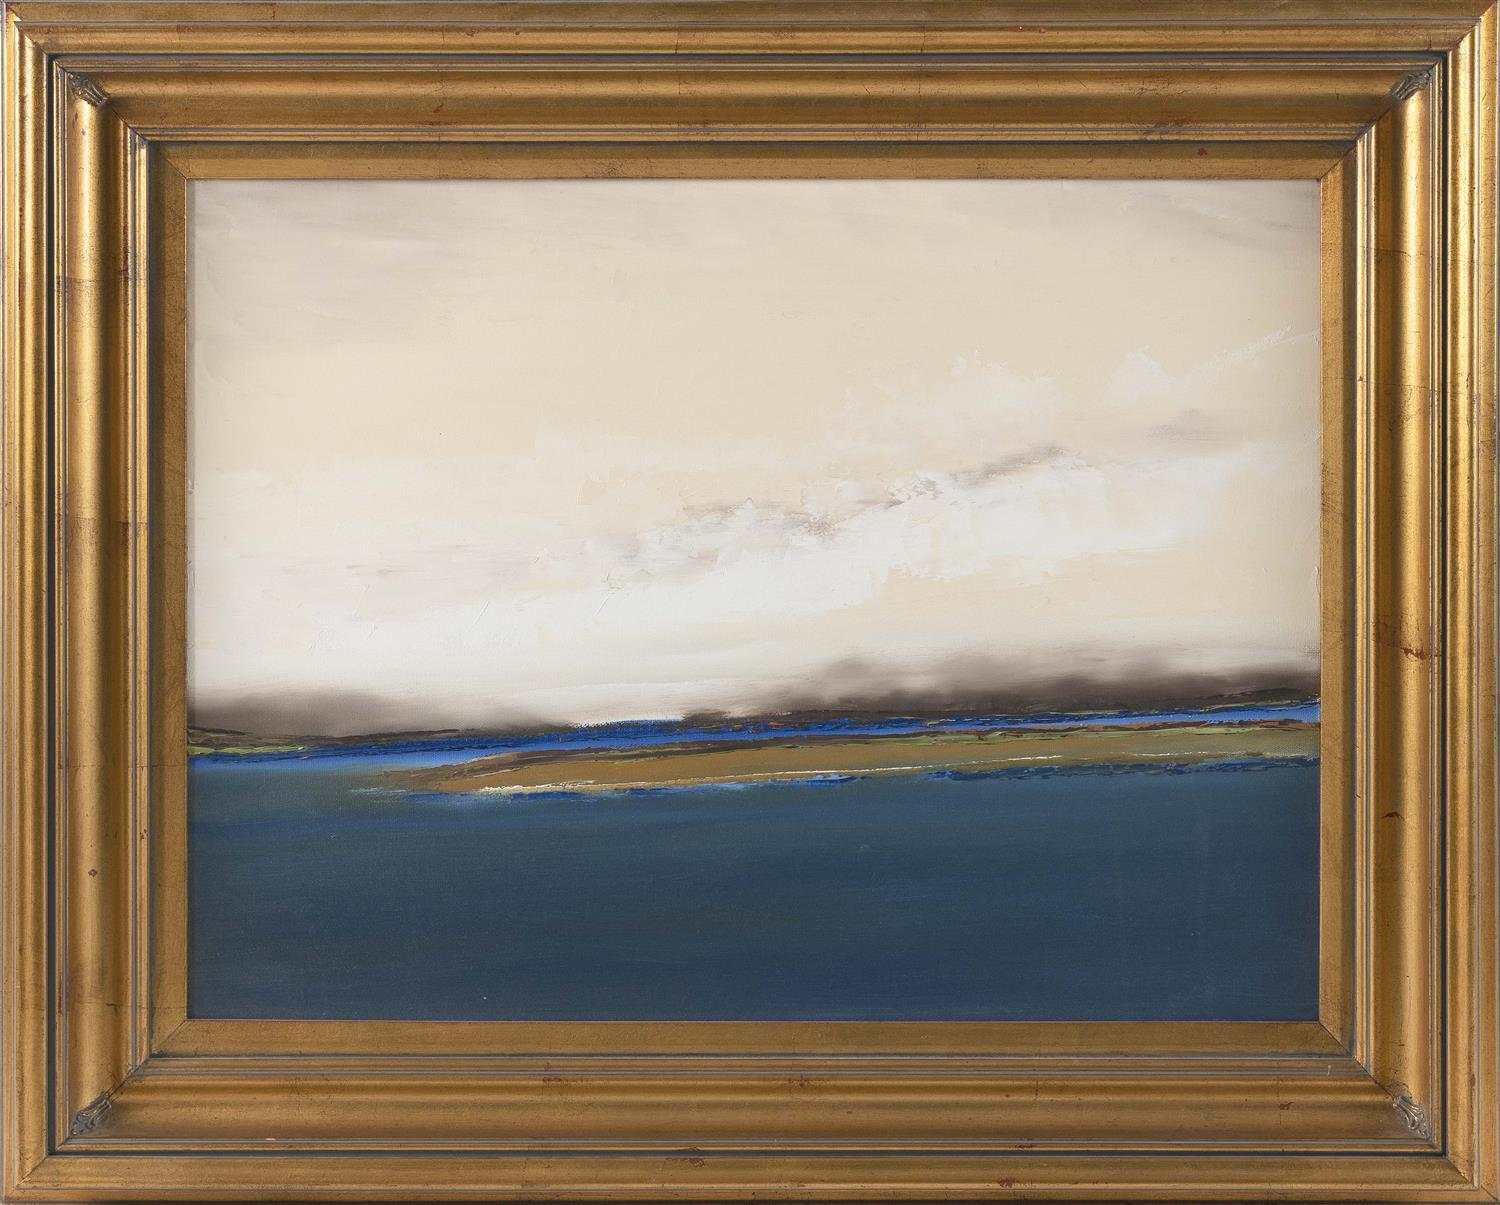 """JOE CLEMENT, America, Contemporary, Approaching storm, Provincetown, Massachusetts., Oil on canvas, 18"""" x 24"""". Framed 25"""" x 41""""."""